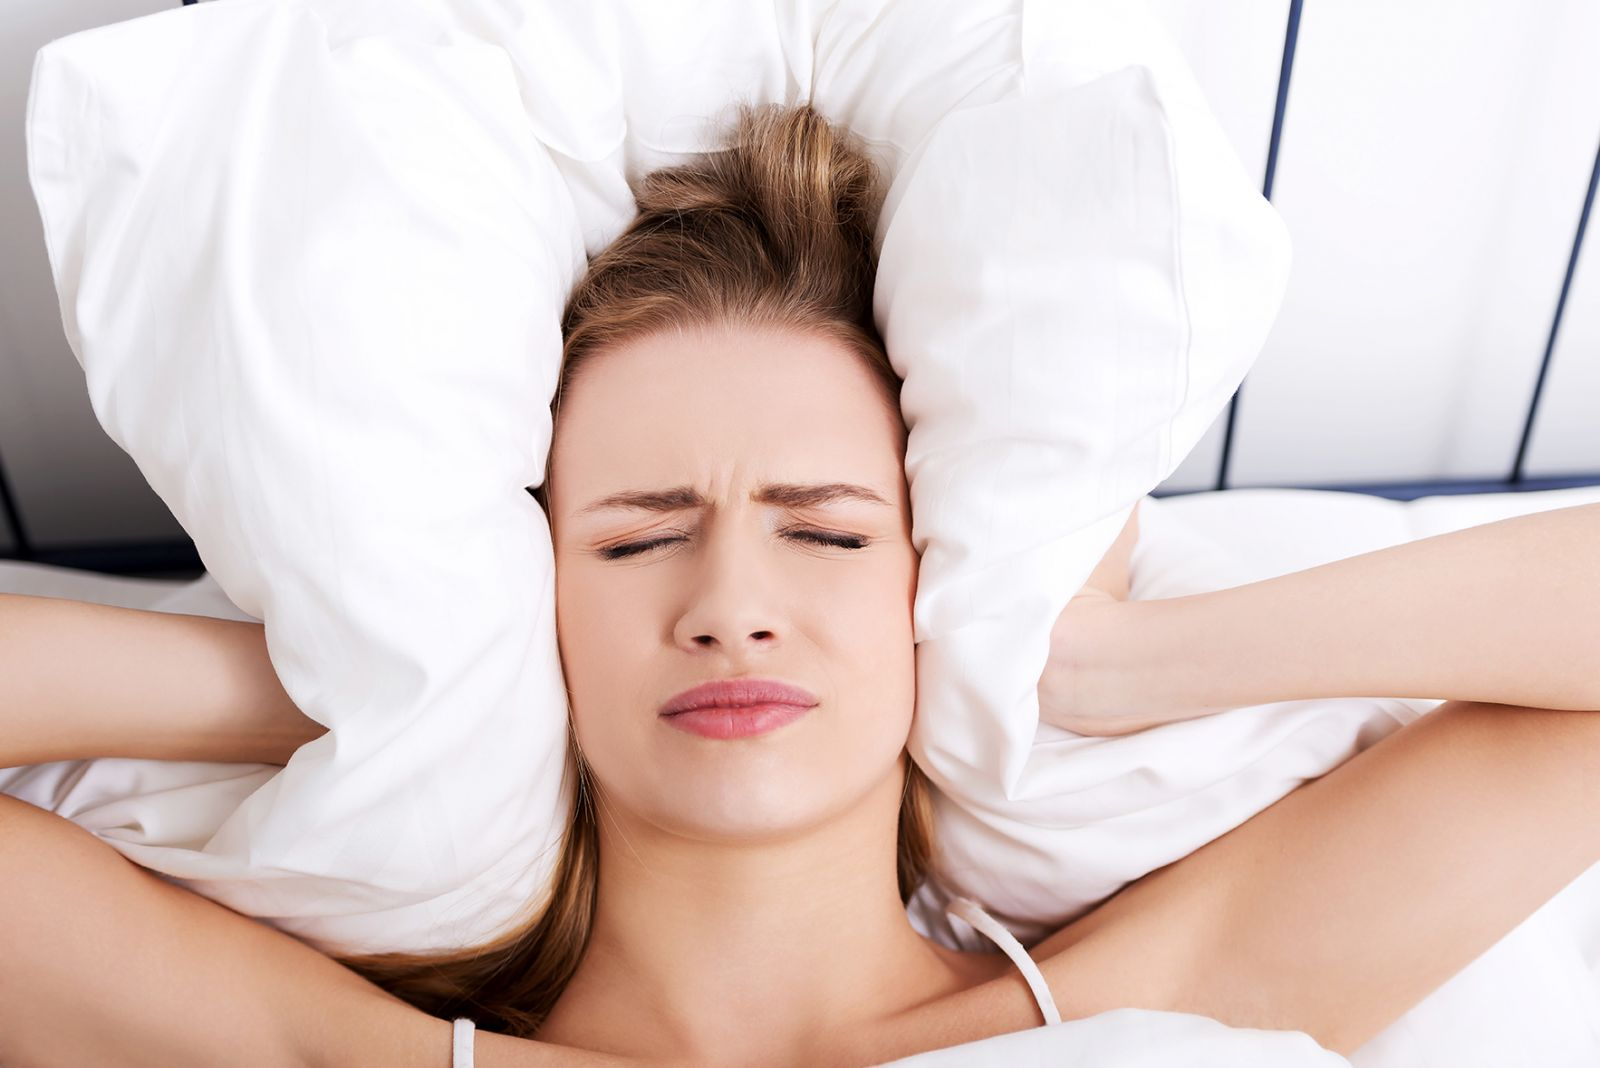 Woman holding Pillows over her ears to reduce sound